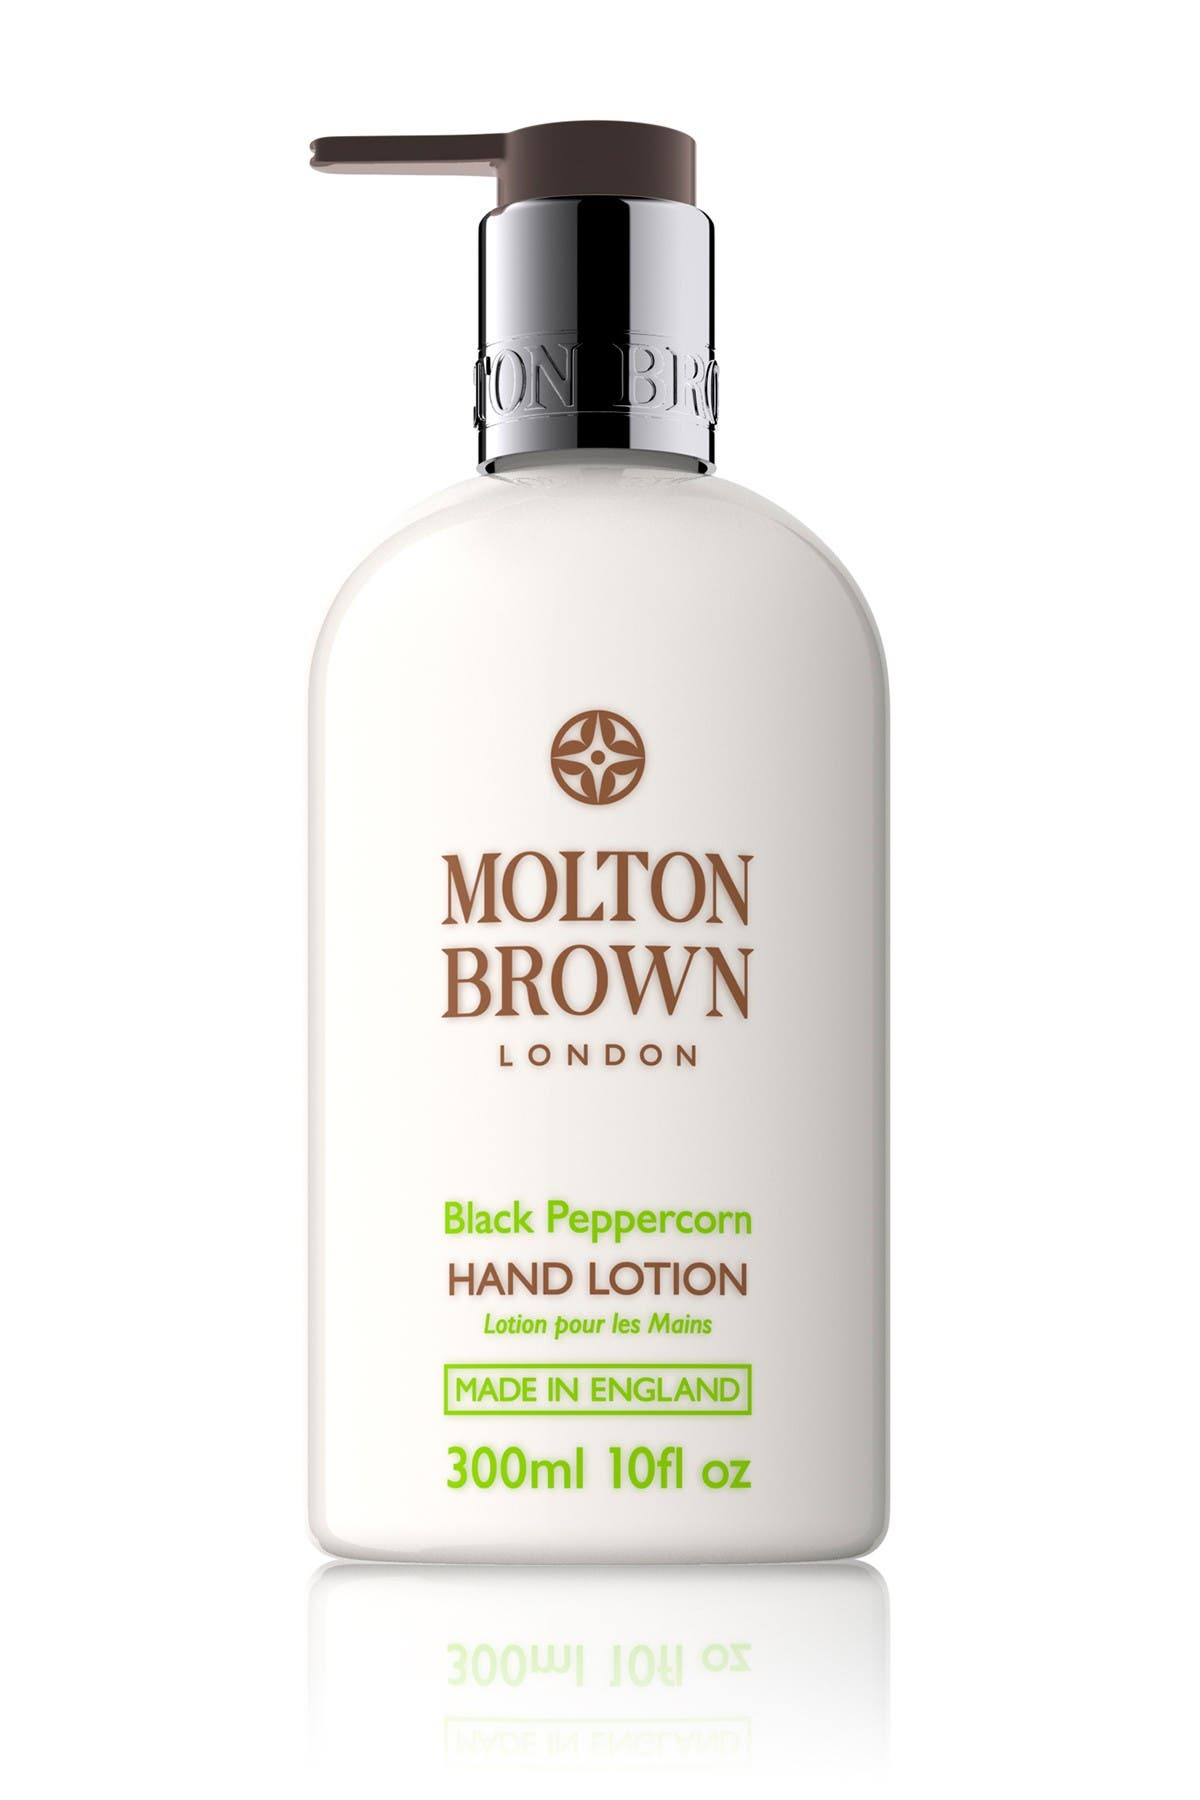 Image of Molton Brown Black Peppercorn Hand Lotion